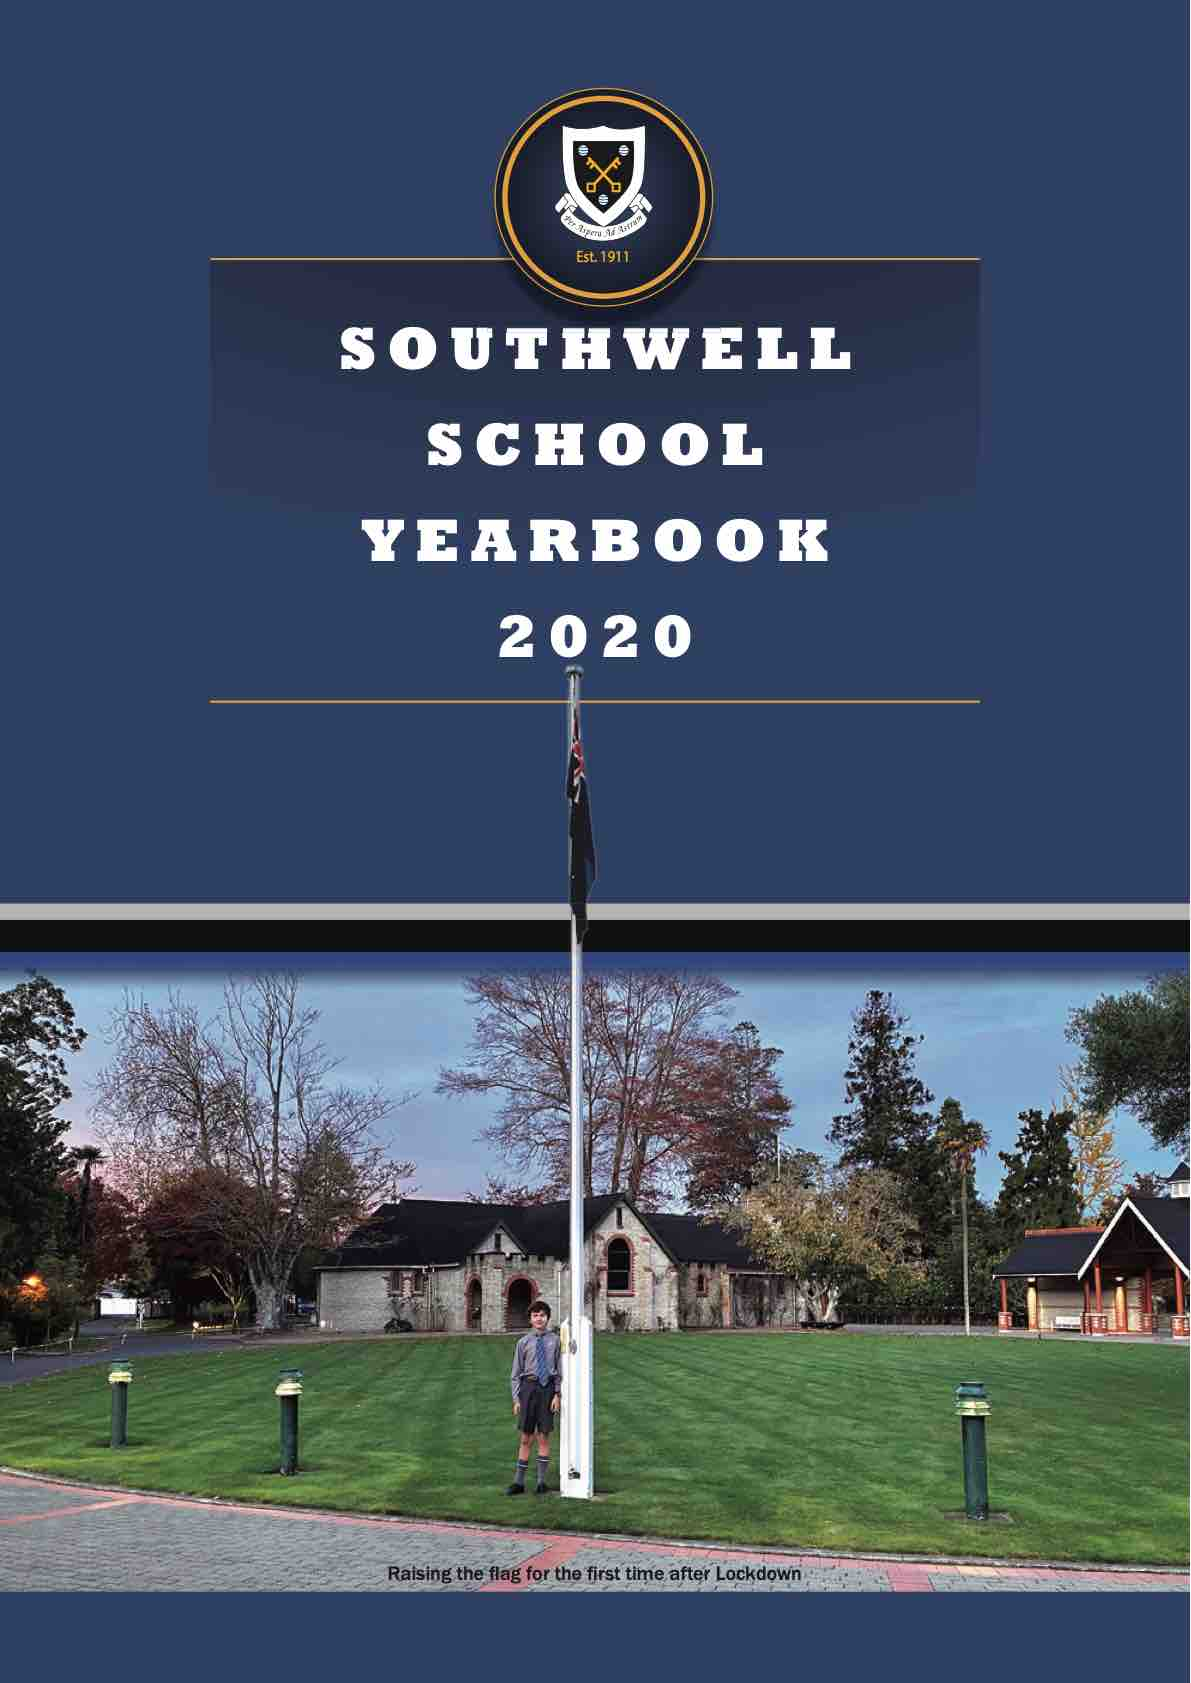 Southwell School - School Year Book 2020 cover